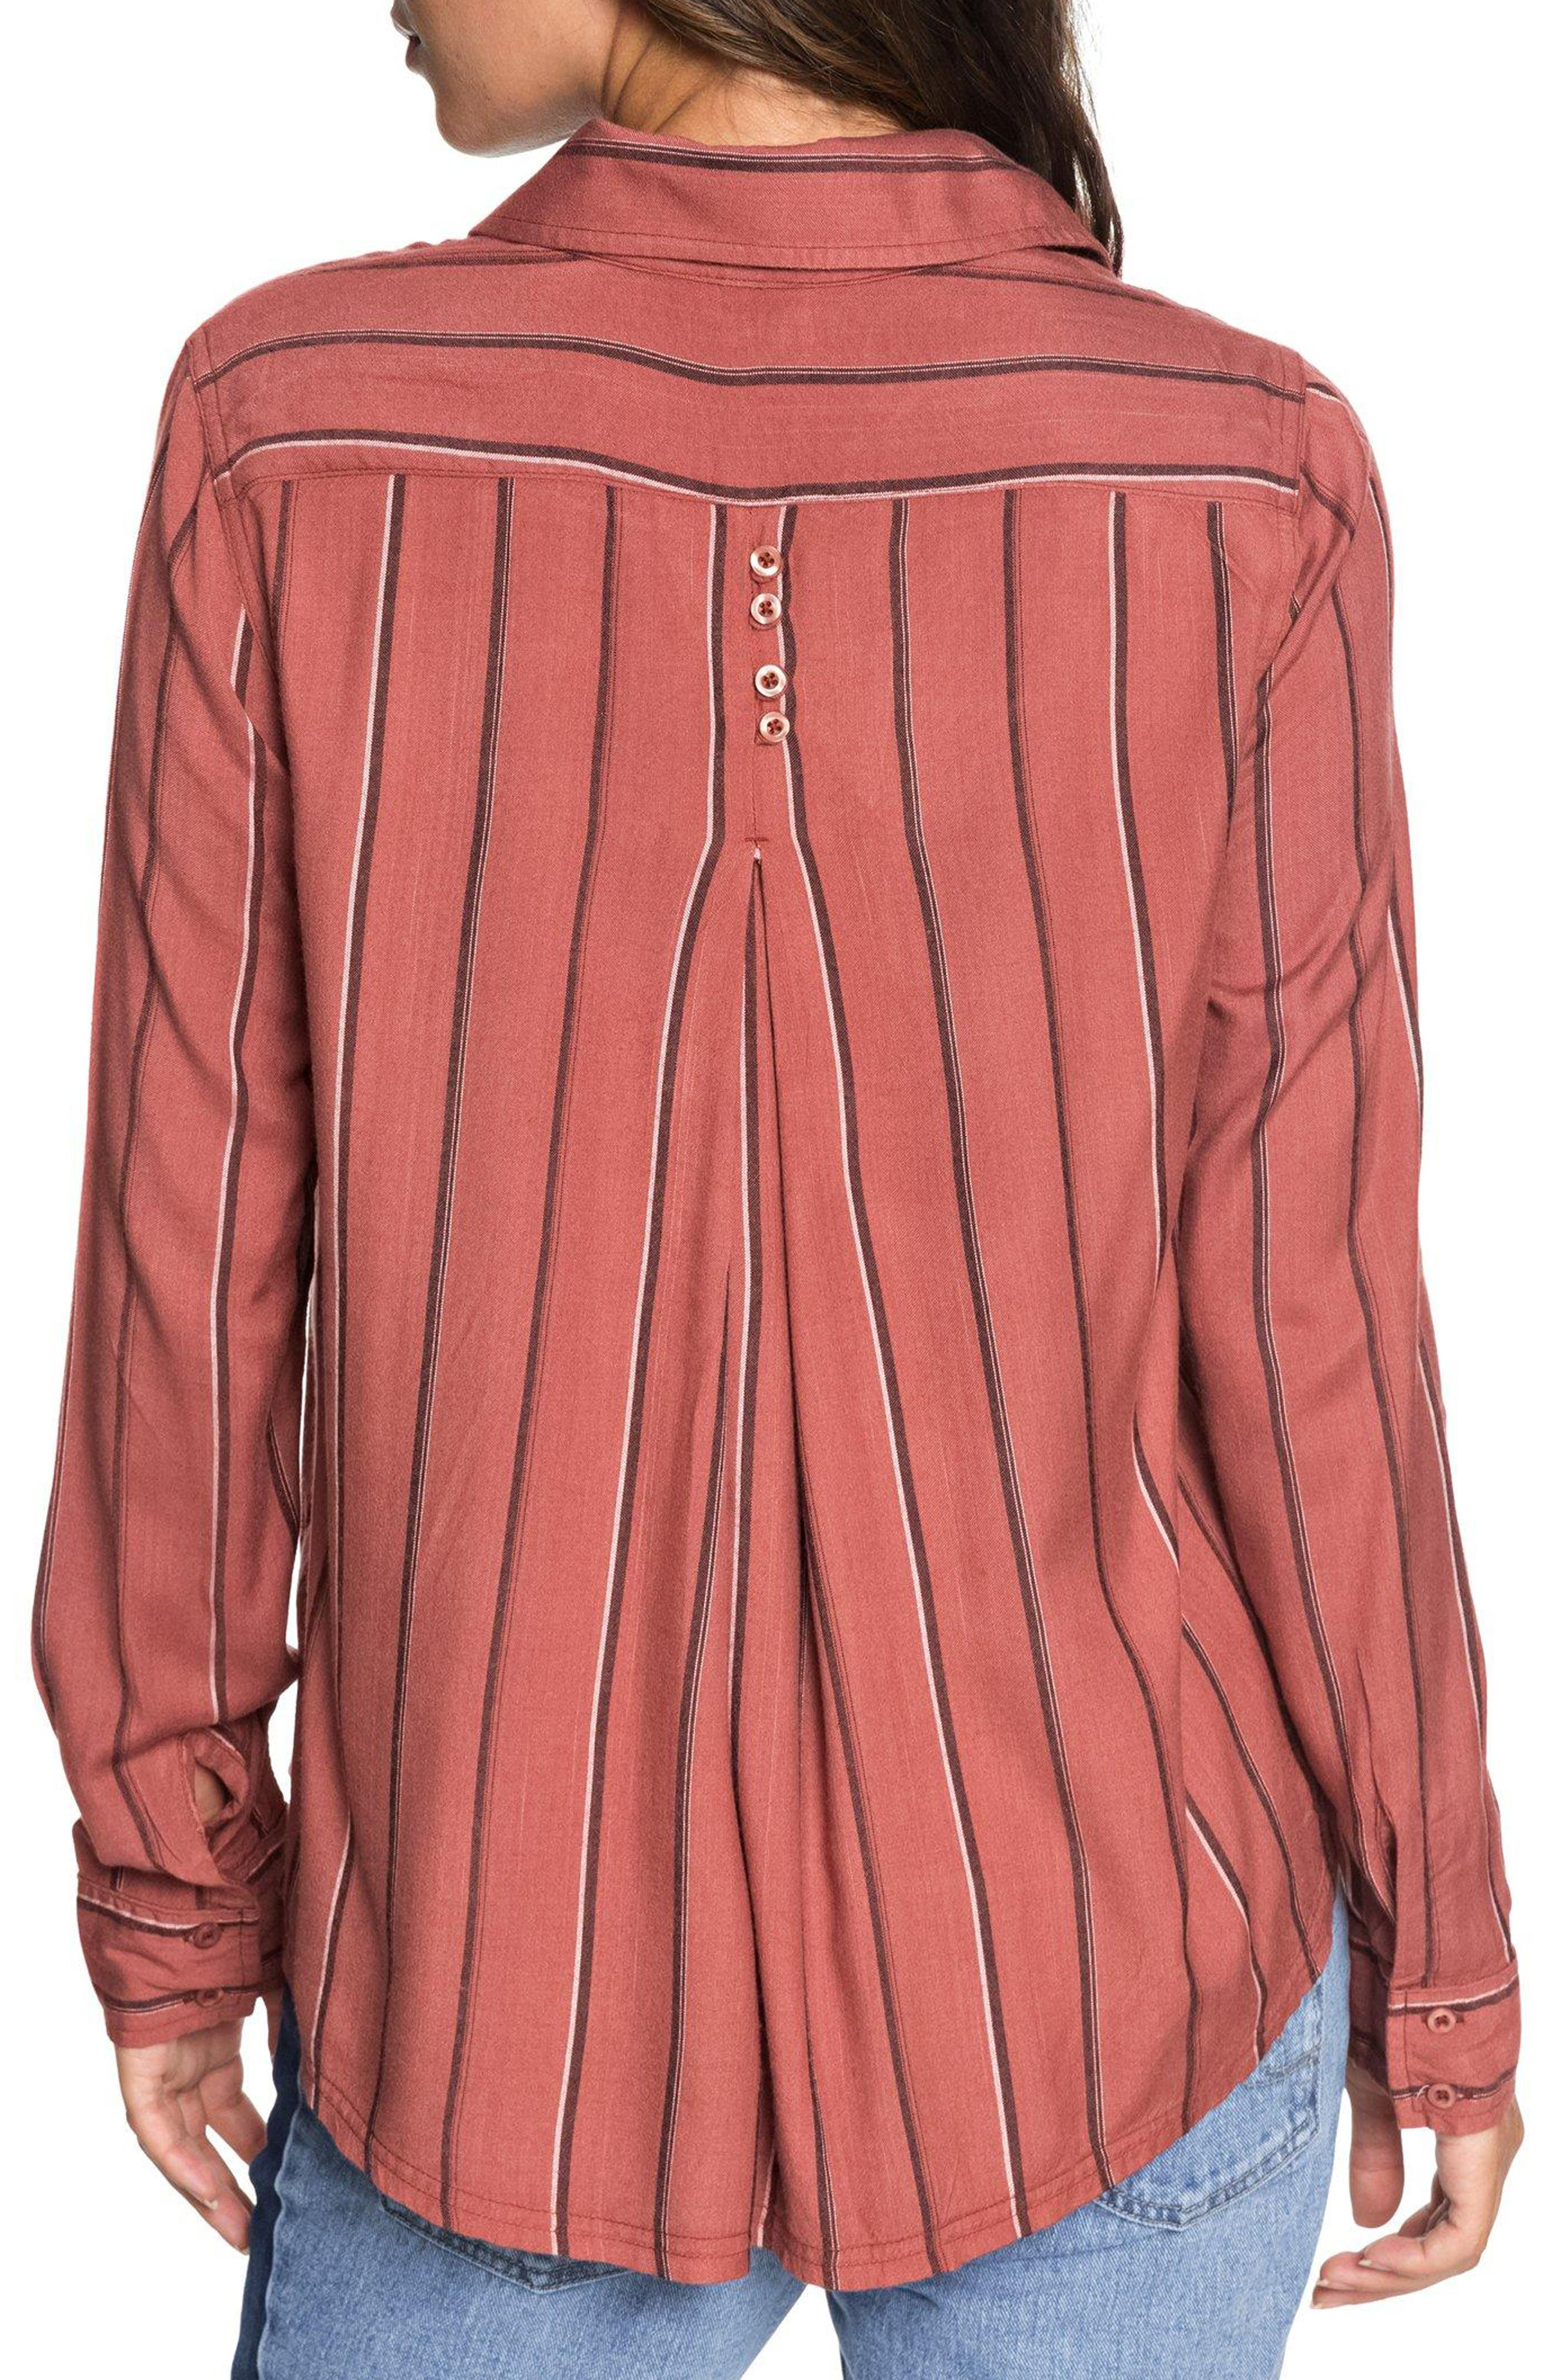 Concrete Streets Stripe Shirt,                             Alternate thumbnail 2, color,                             WITHERED ROSE